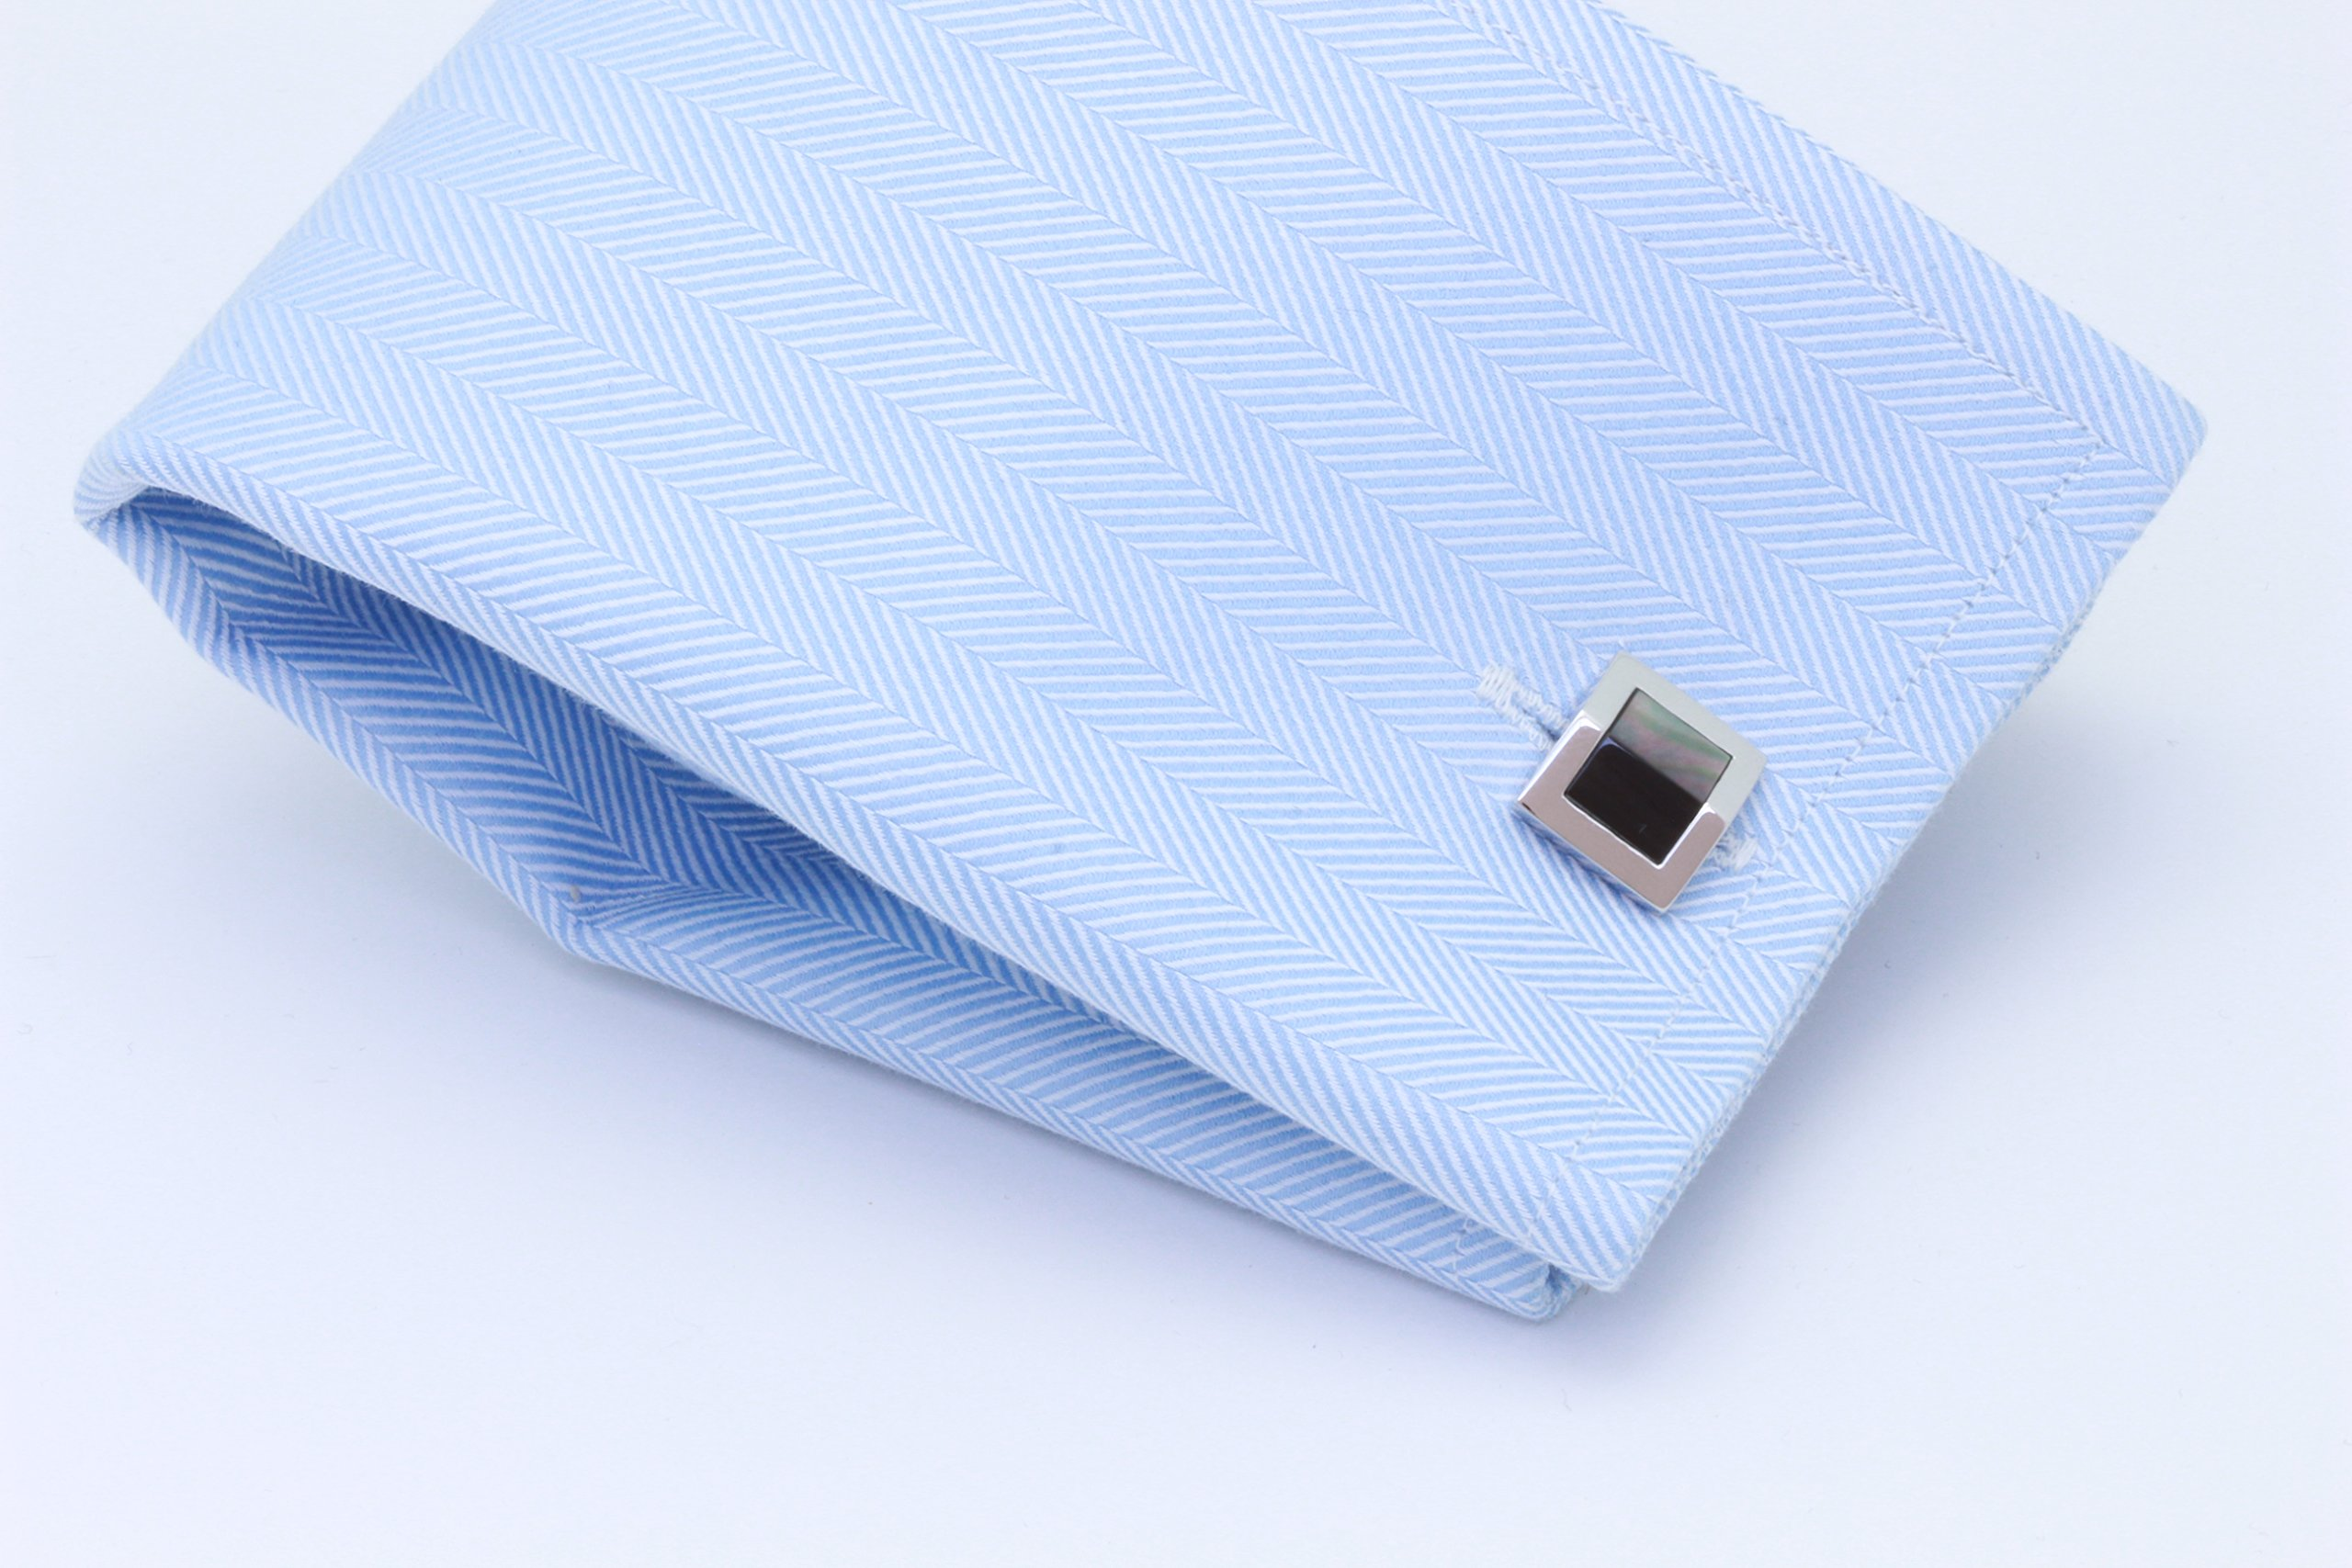 Zsamuel Mens Sterling Silver Black Mother of Pearl Gable Design Cufflinks by Z.Samuel (Image #3)